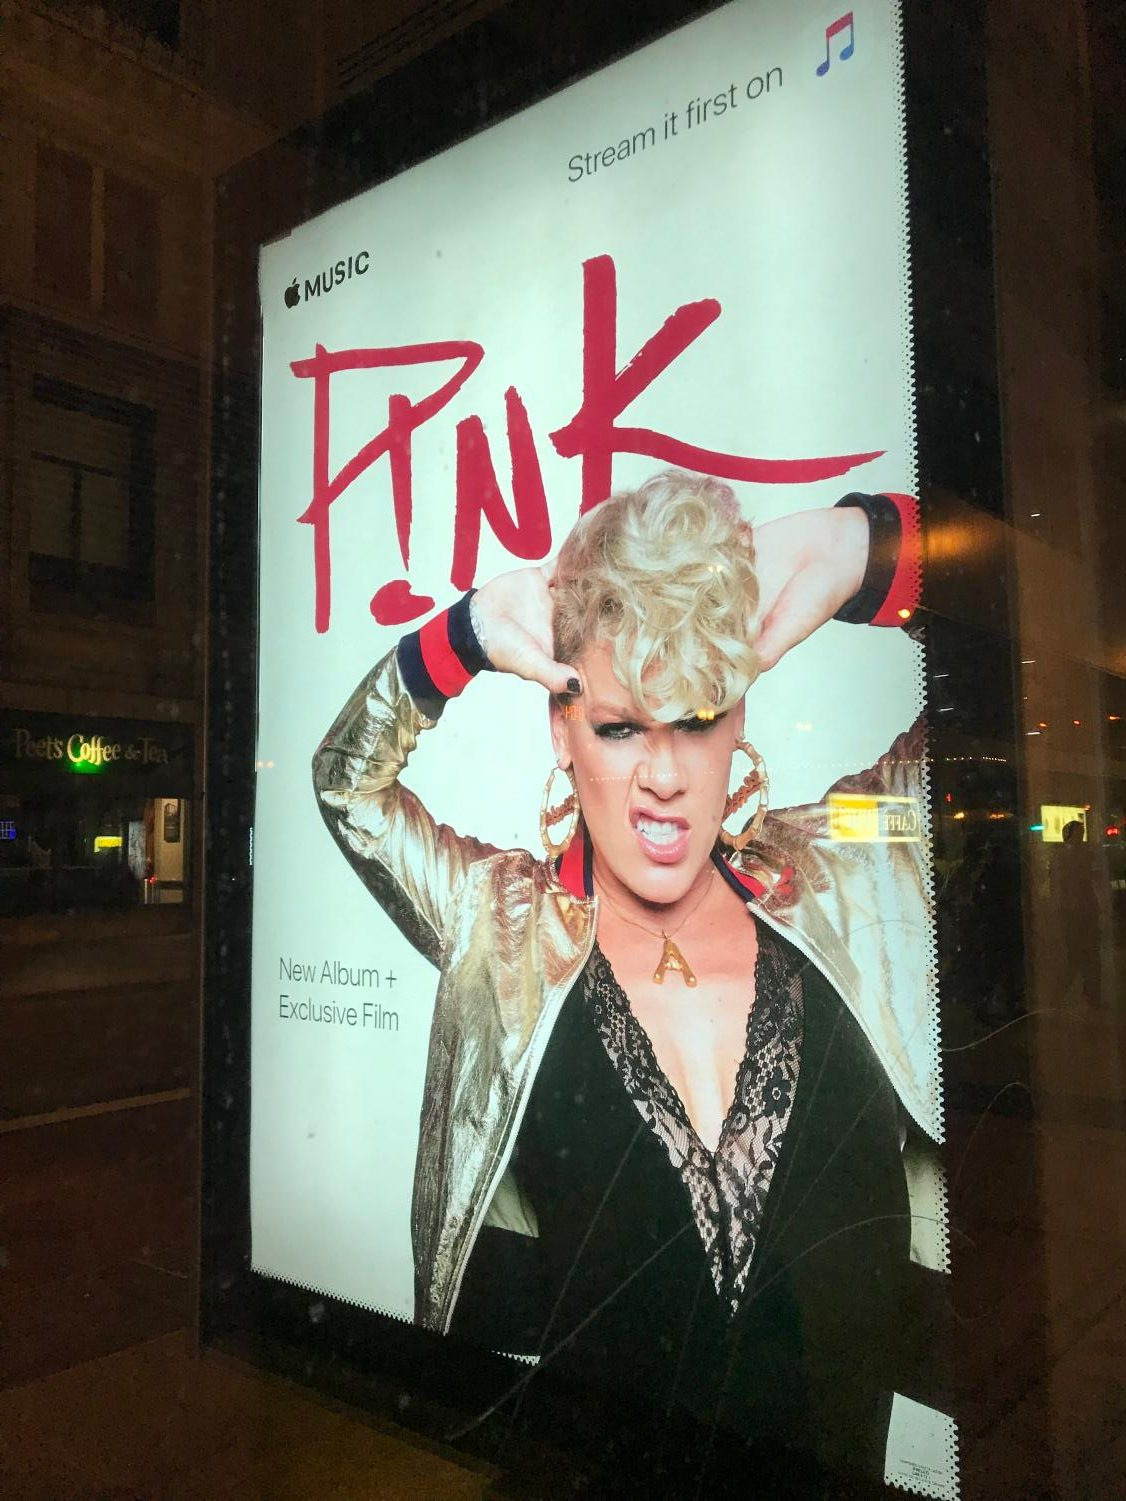 Apple Music displays an advertisement to buy P!nk's new album,